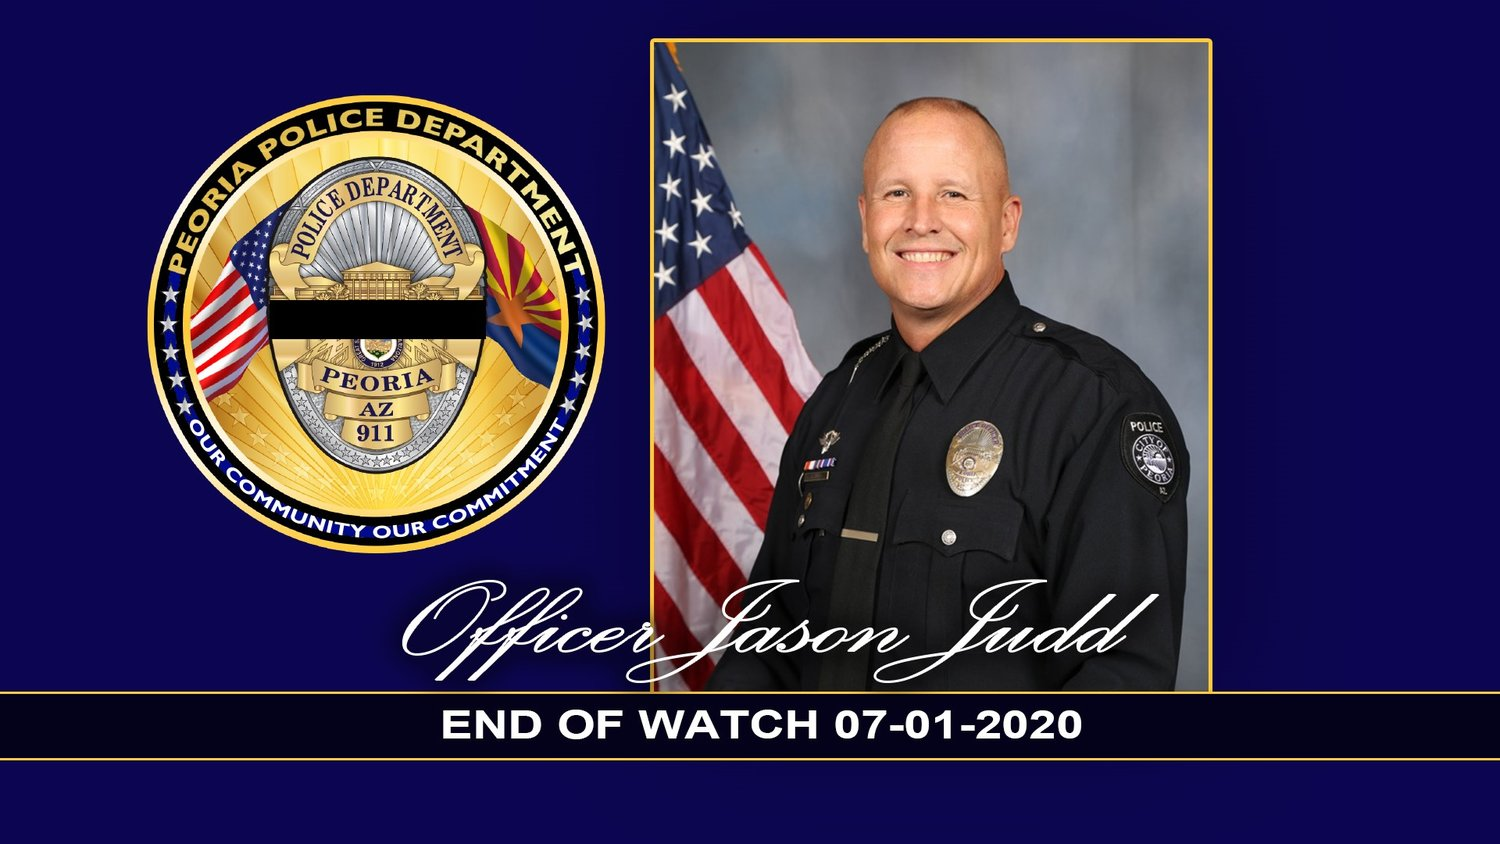 Peoria police Officer Jason Judd died July 1, 2020 following a motorcycle accident at Liberty High School, near 91st Avenue and Deer Valley Road.